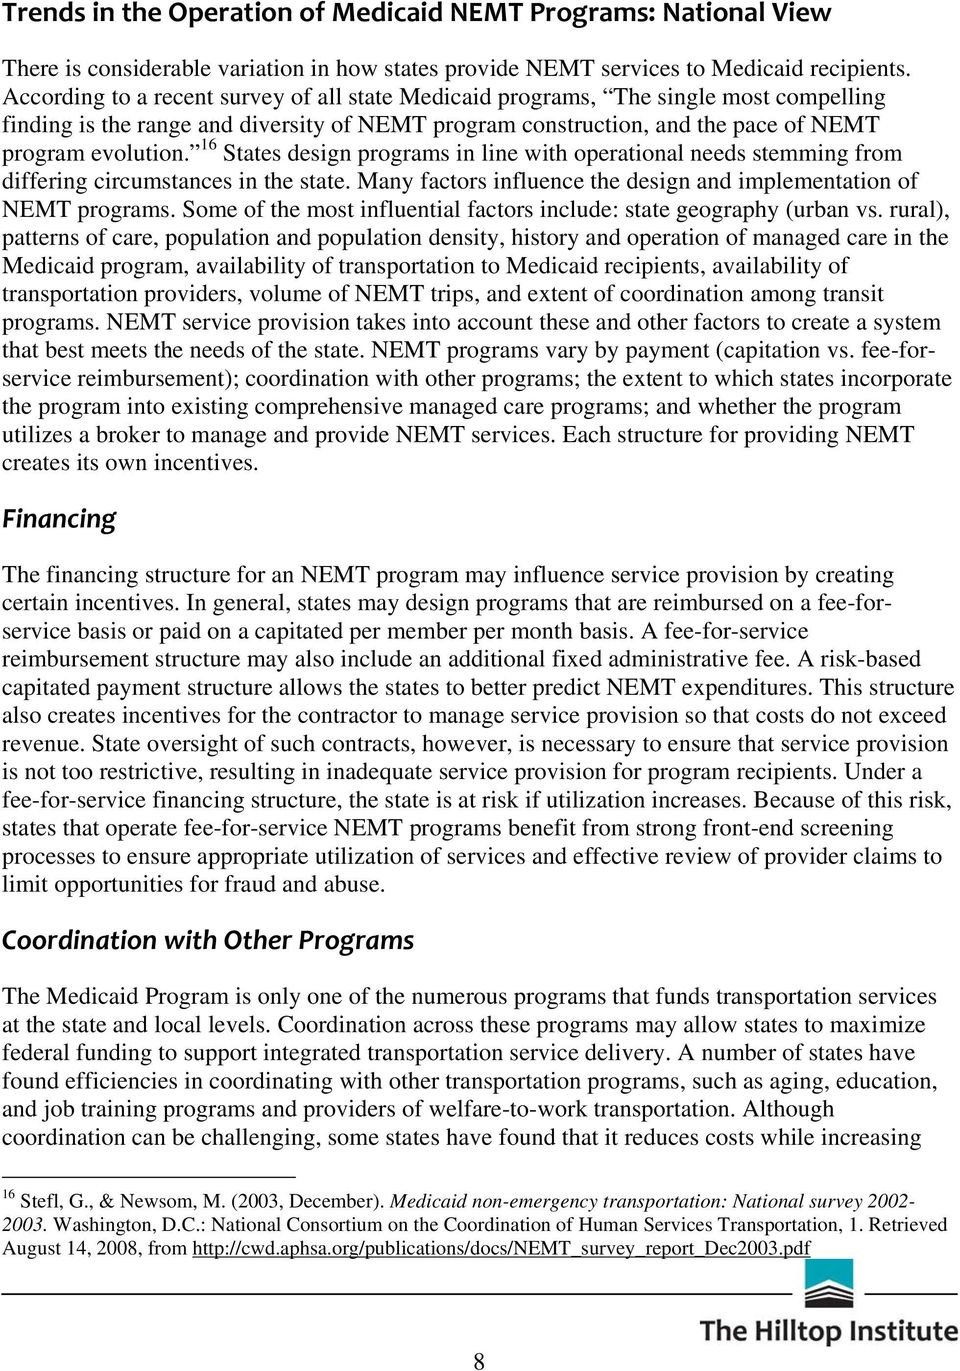 16 States design programs in line with operational needs stemming from differing circumstances in the state. Many factors influence the design and implementation of NEMT programs.